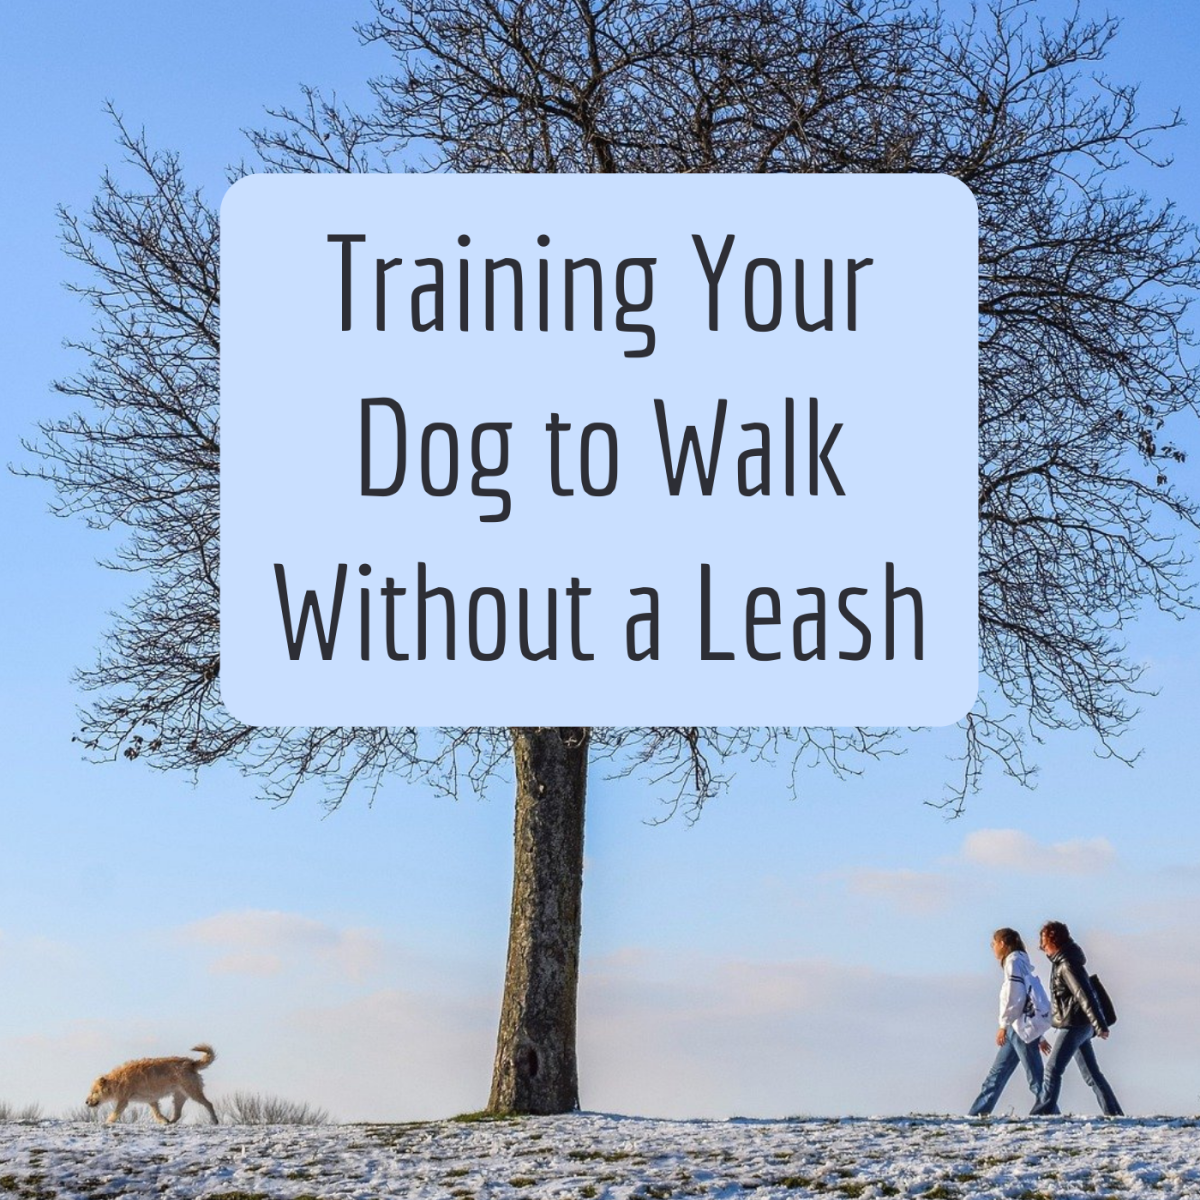 How to Train Your Dog to Walk Without a Leash